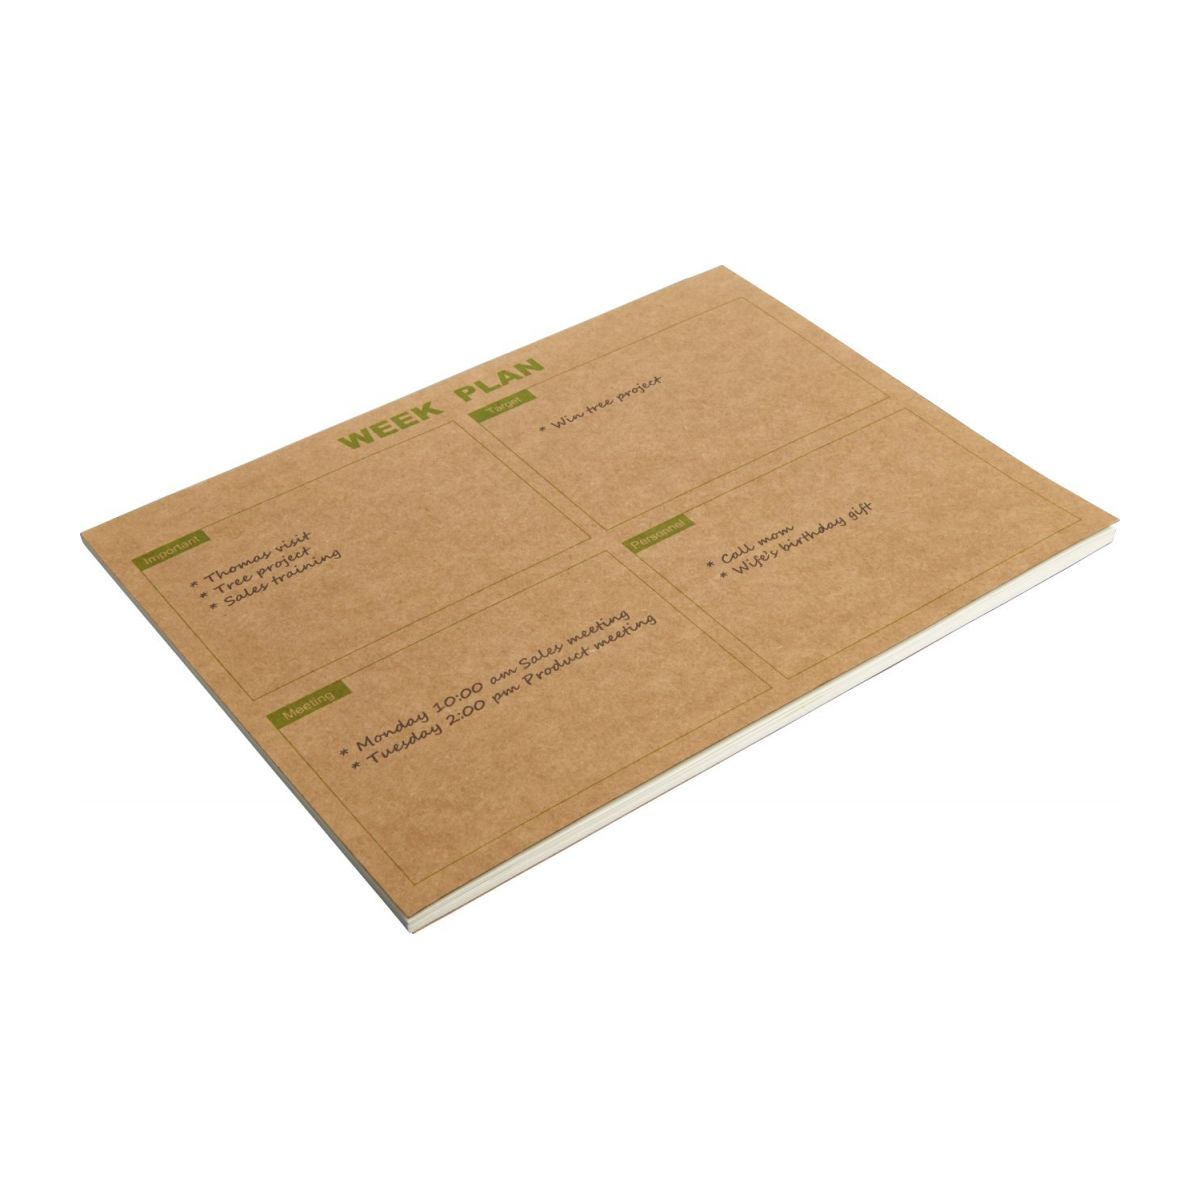 Stationery box (14 pieces) n°15